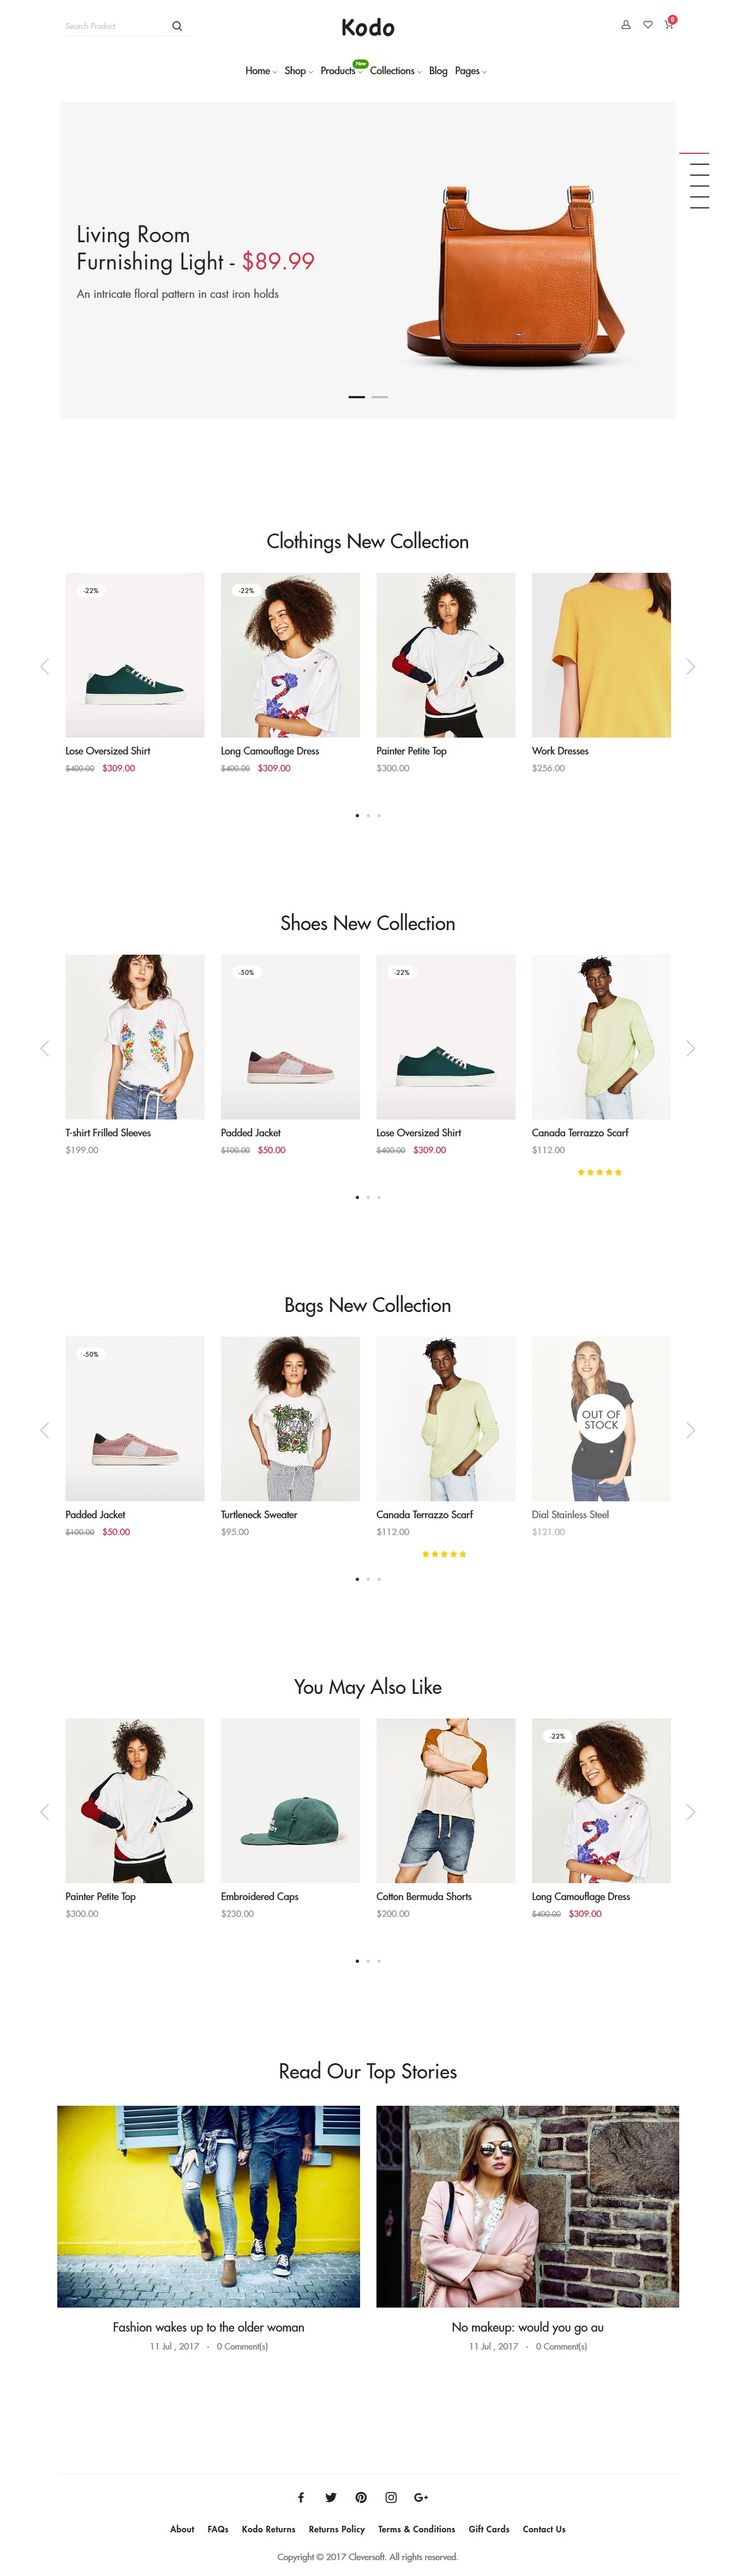 Kodo is clean, stylish and modern design responsive #Shopify theme for stunning #eCommerce website with 11 niche homepage layouts download now..